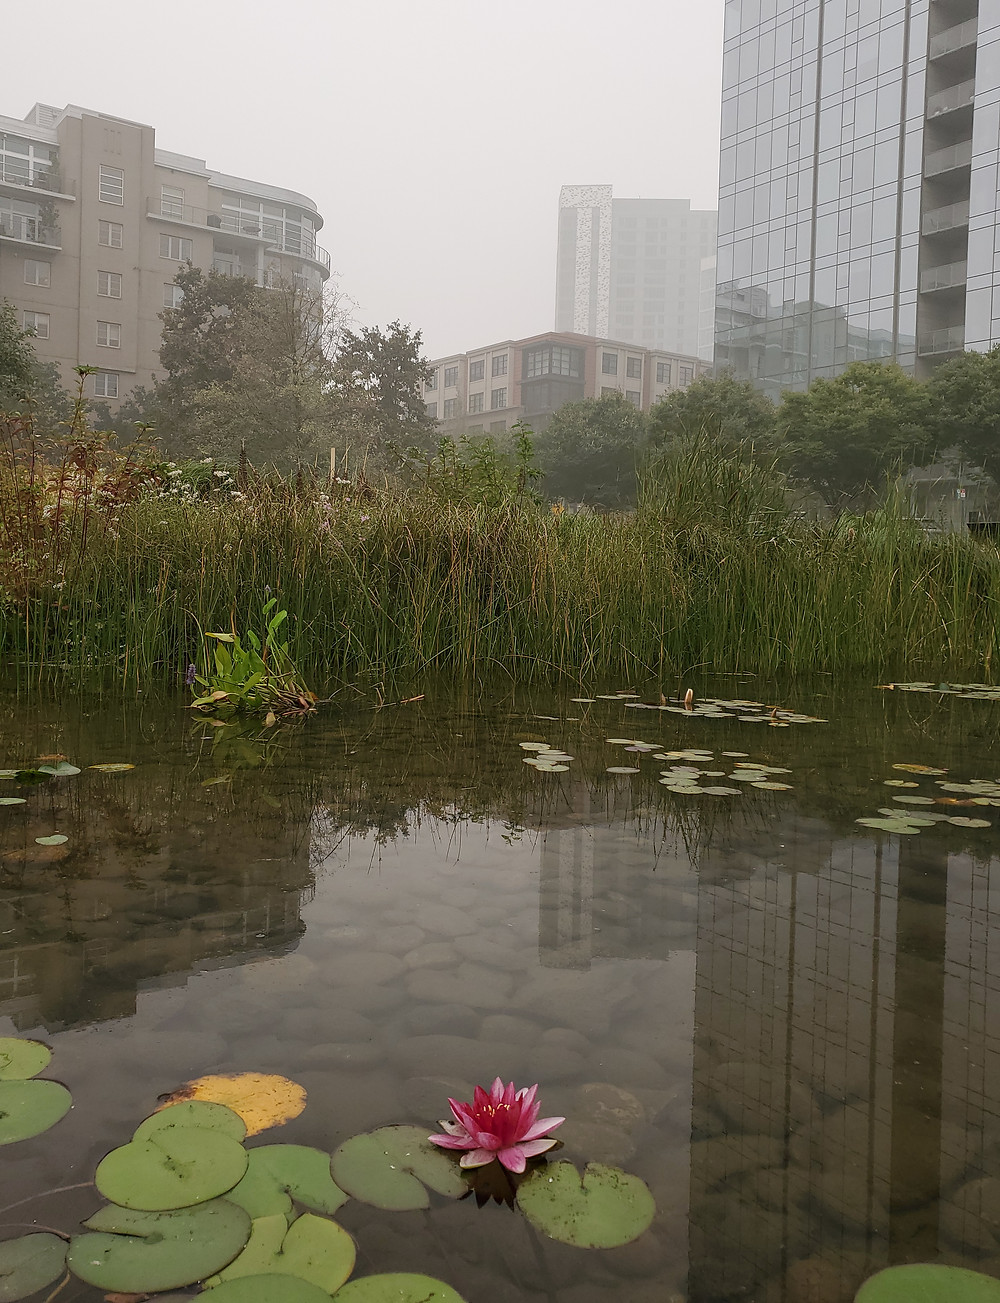 A lotus blooms at Tanner Springs, contrasting against the toxic smoke-filled air.